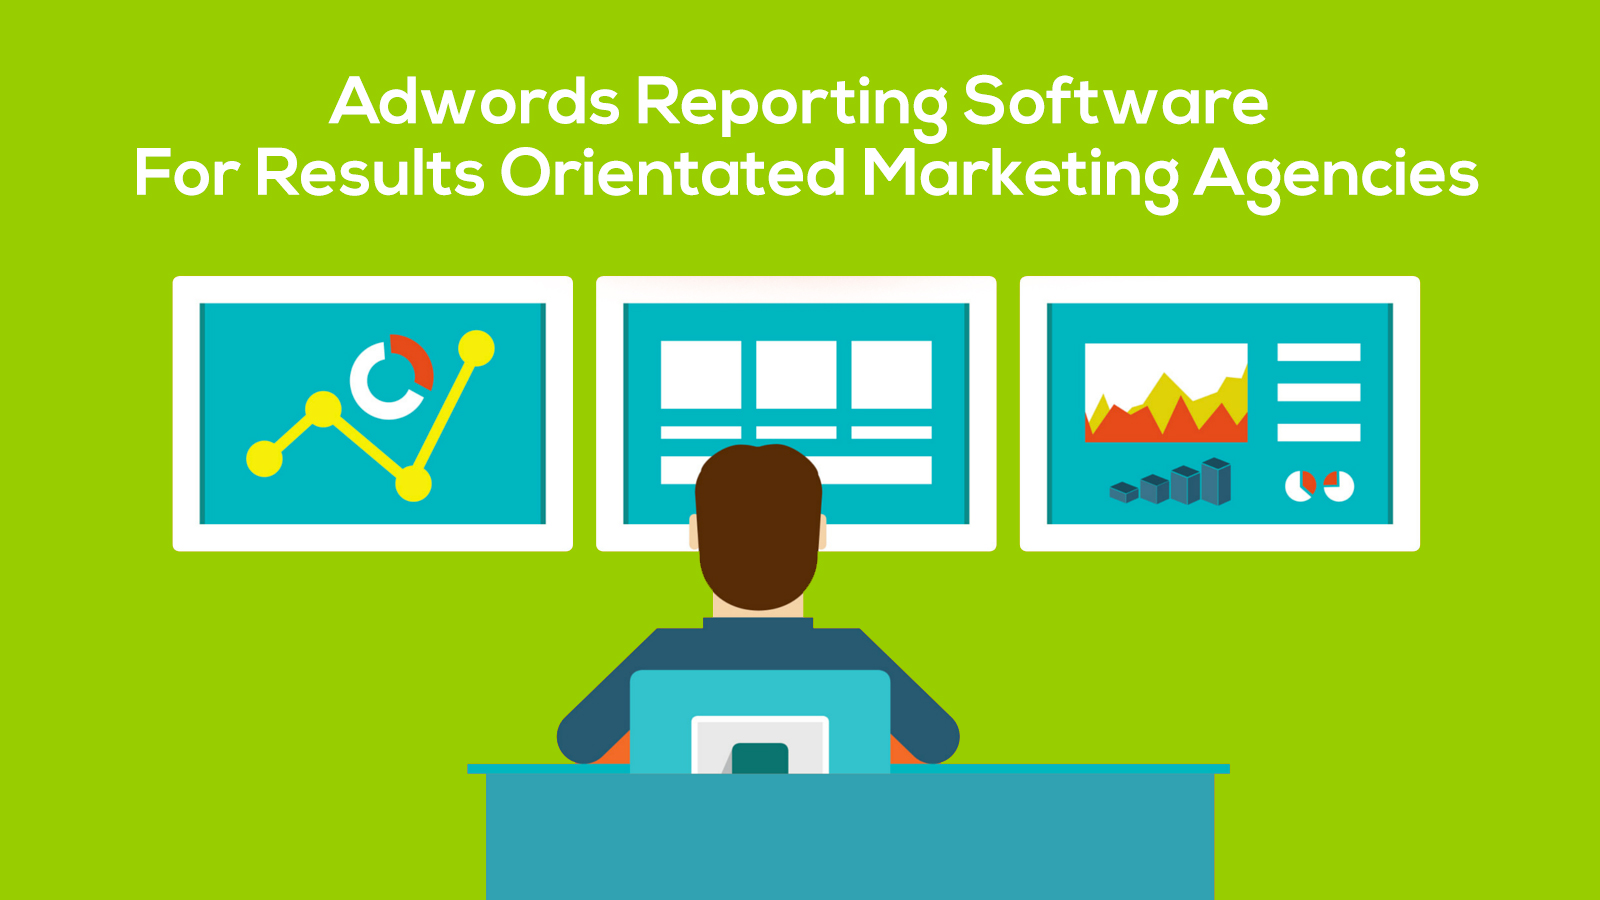 The Five Best Adwords Reporting Softwares For Results Orientated Marketing Agencies